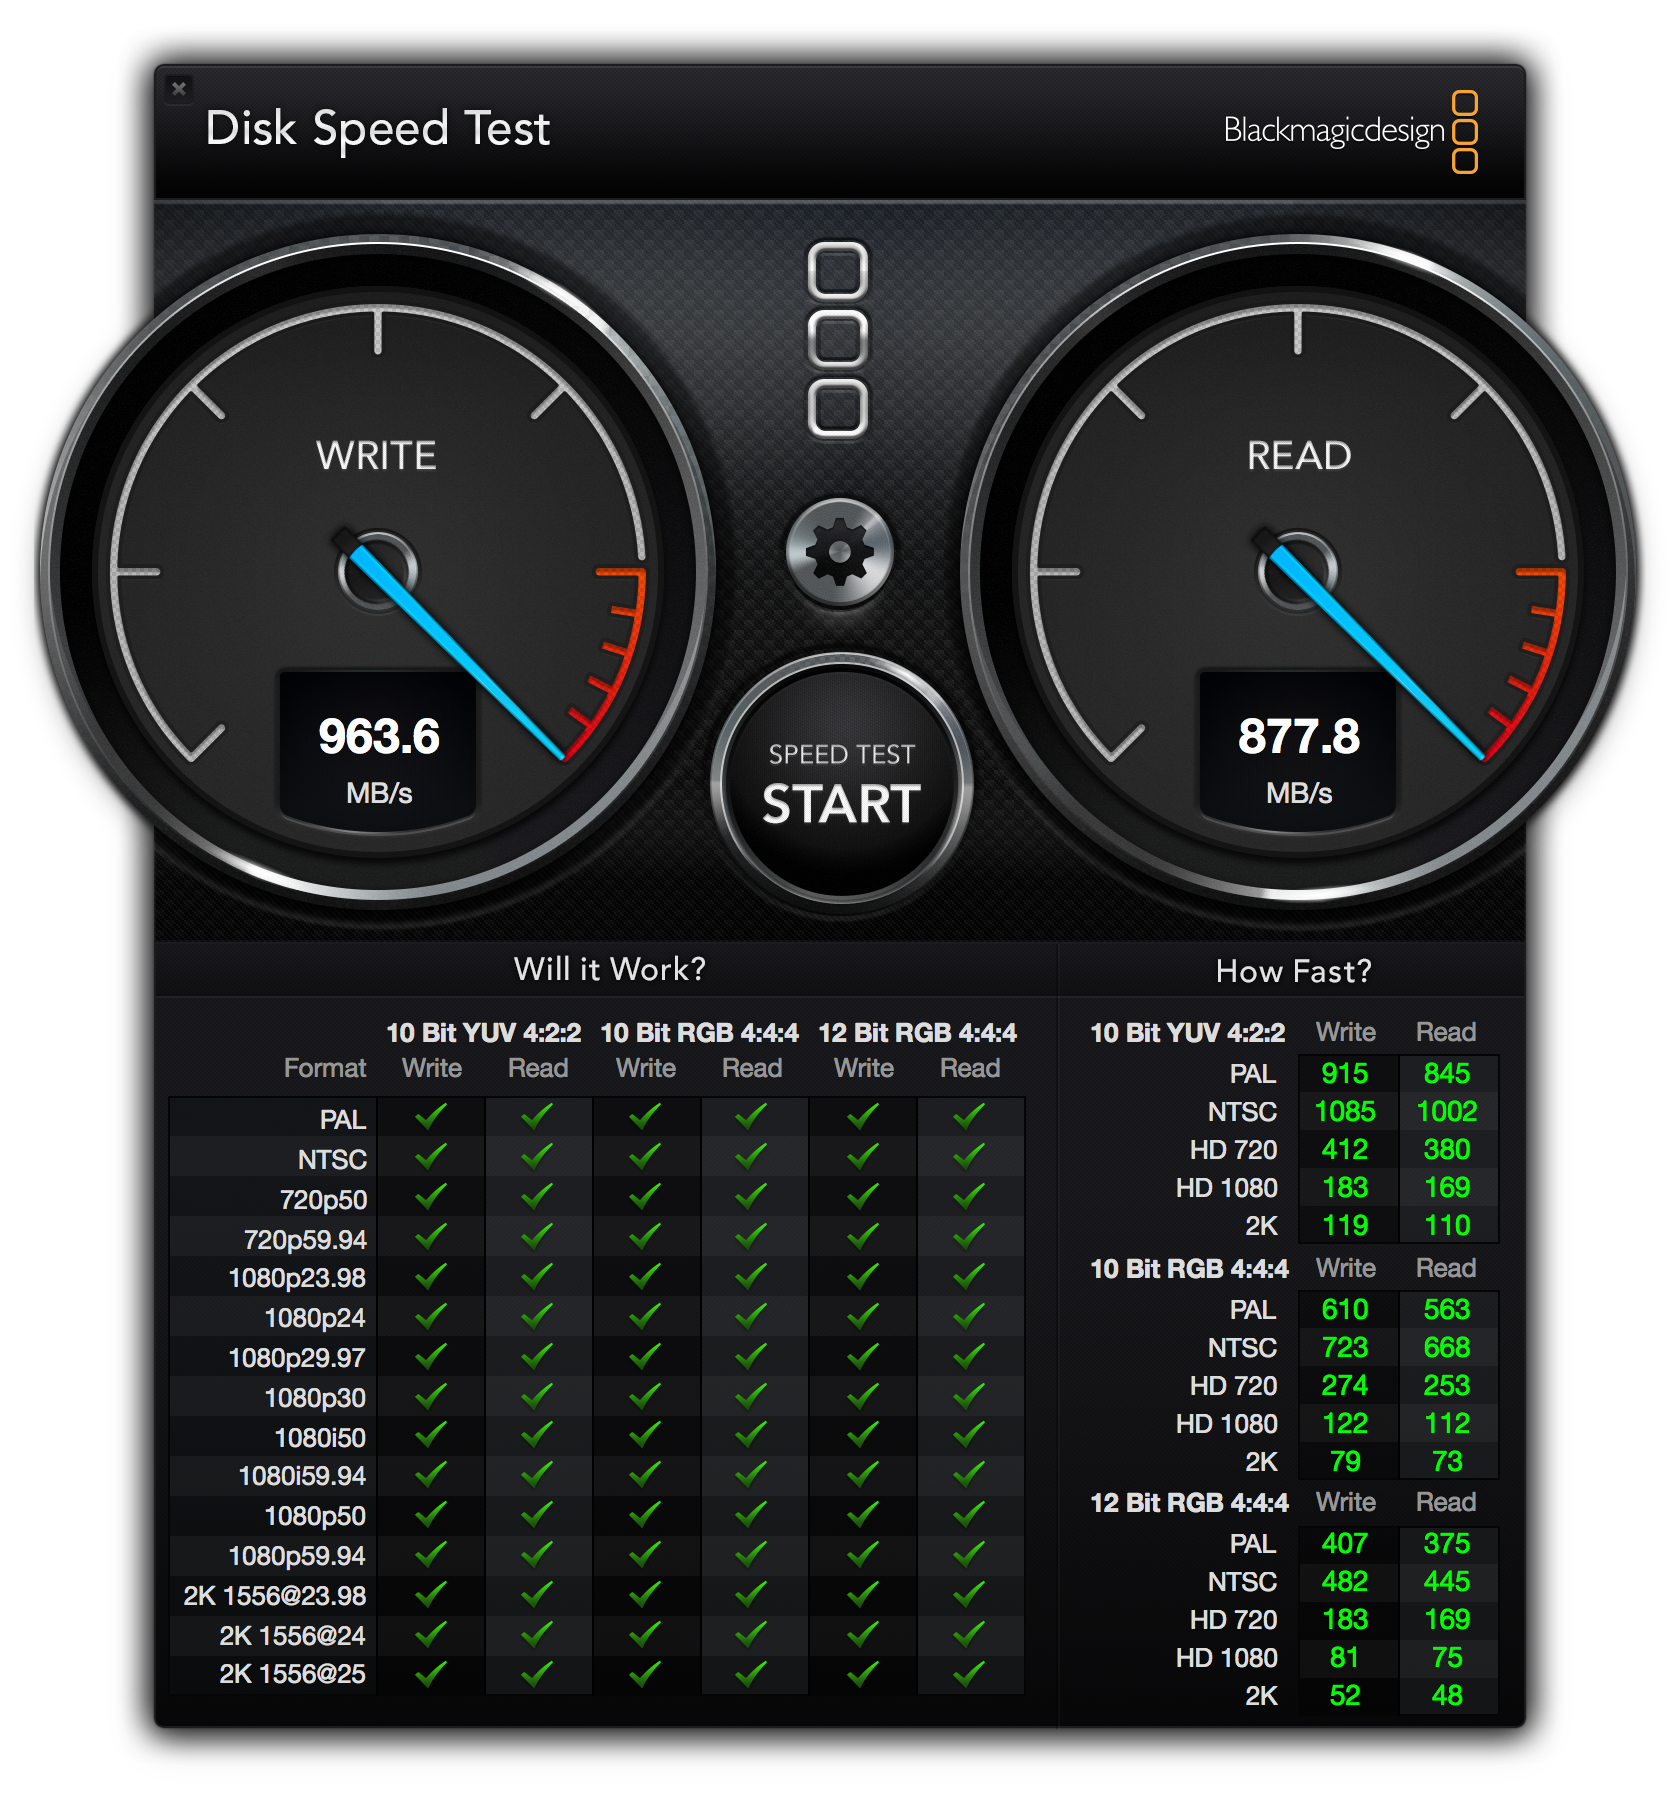 A08S3-PS in RAID0 with Blackmagic Disk Utility